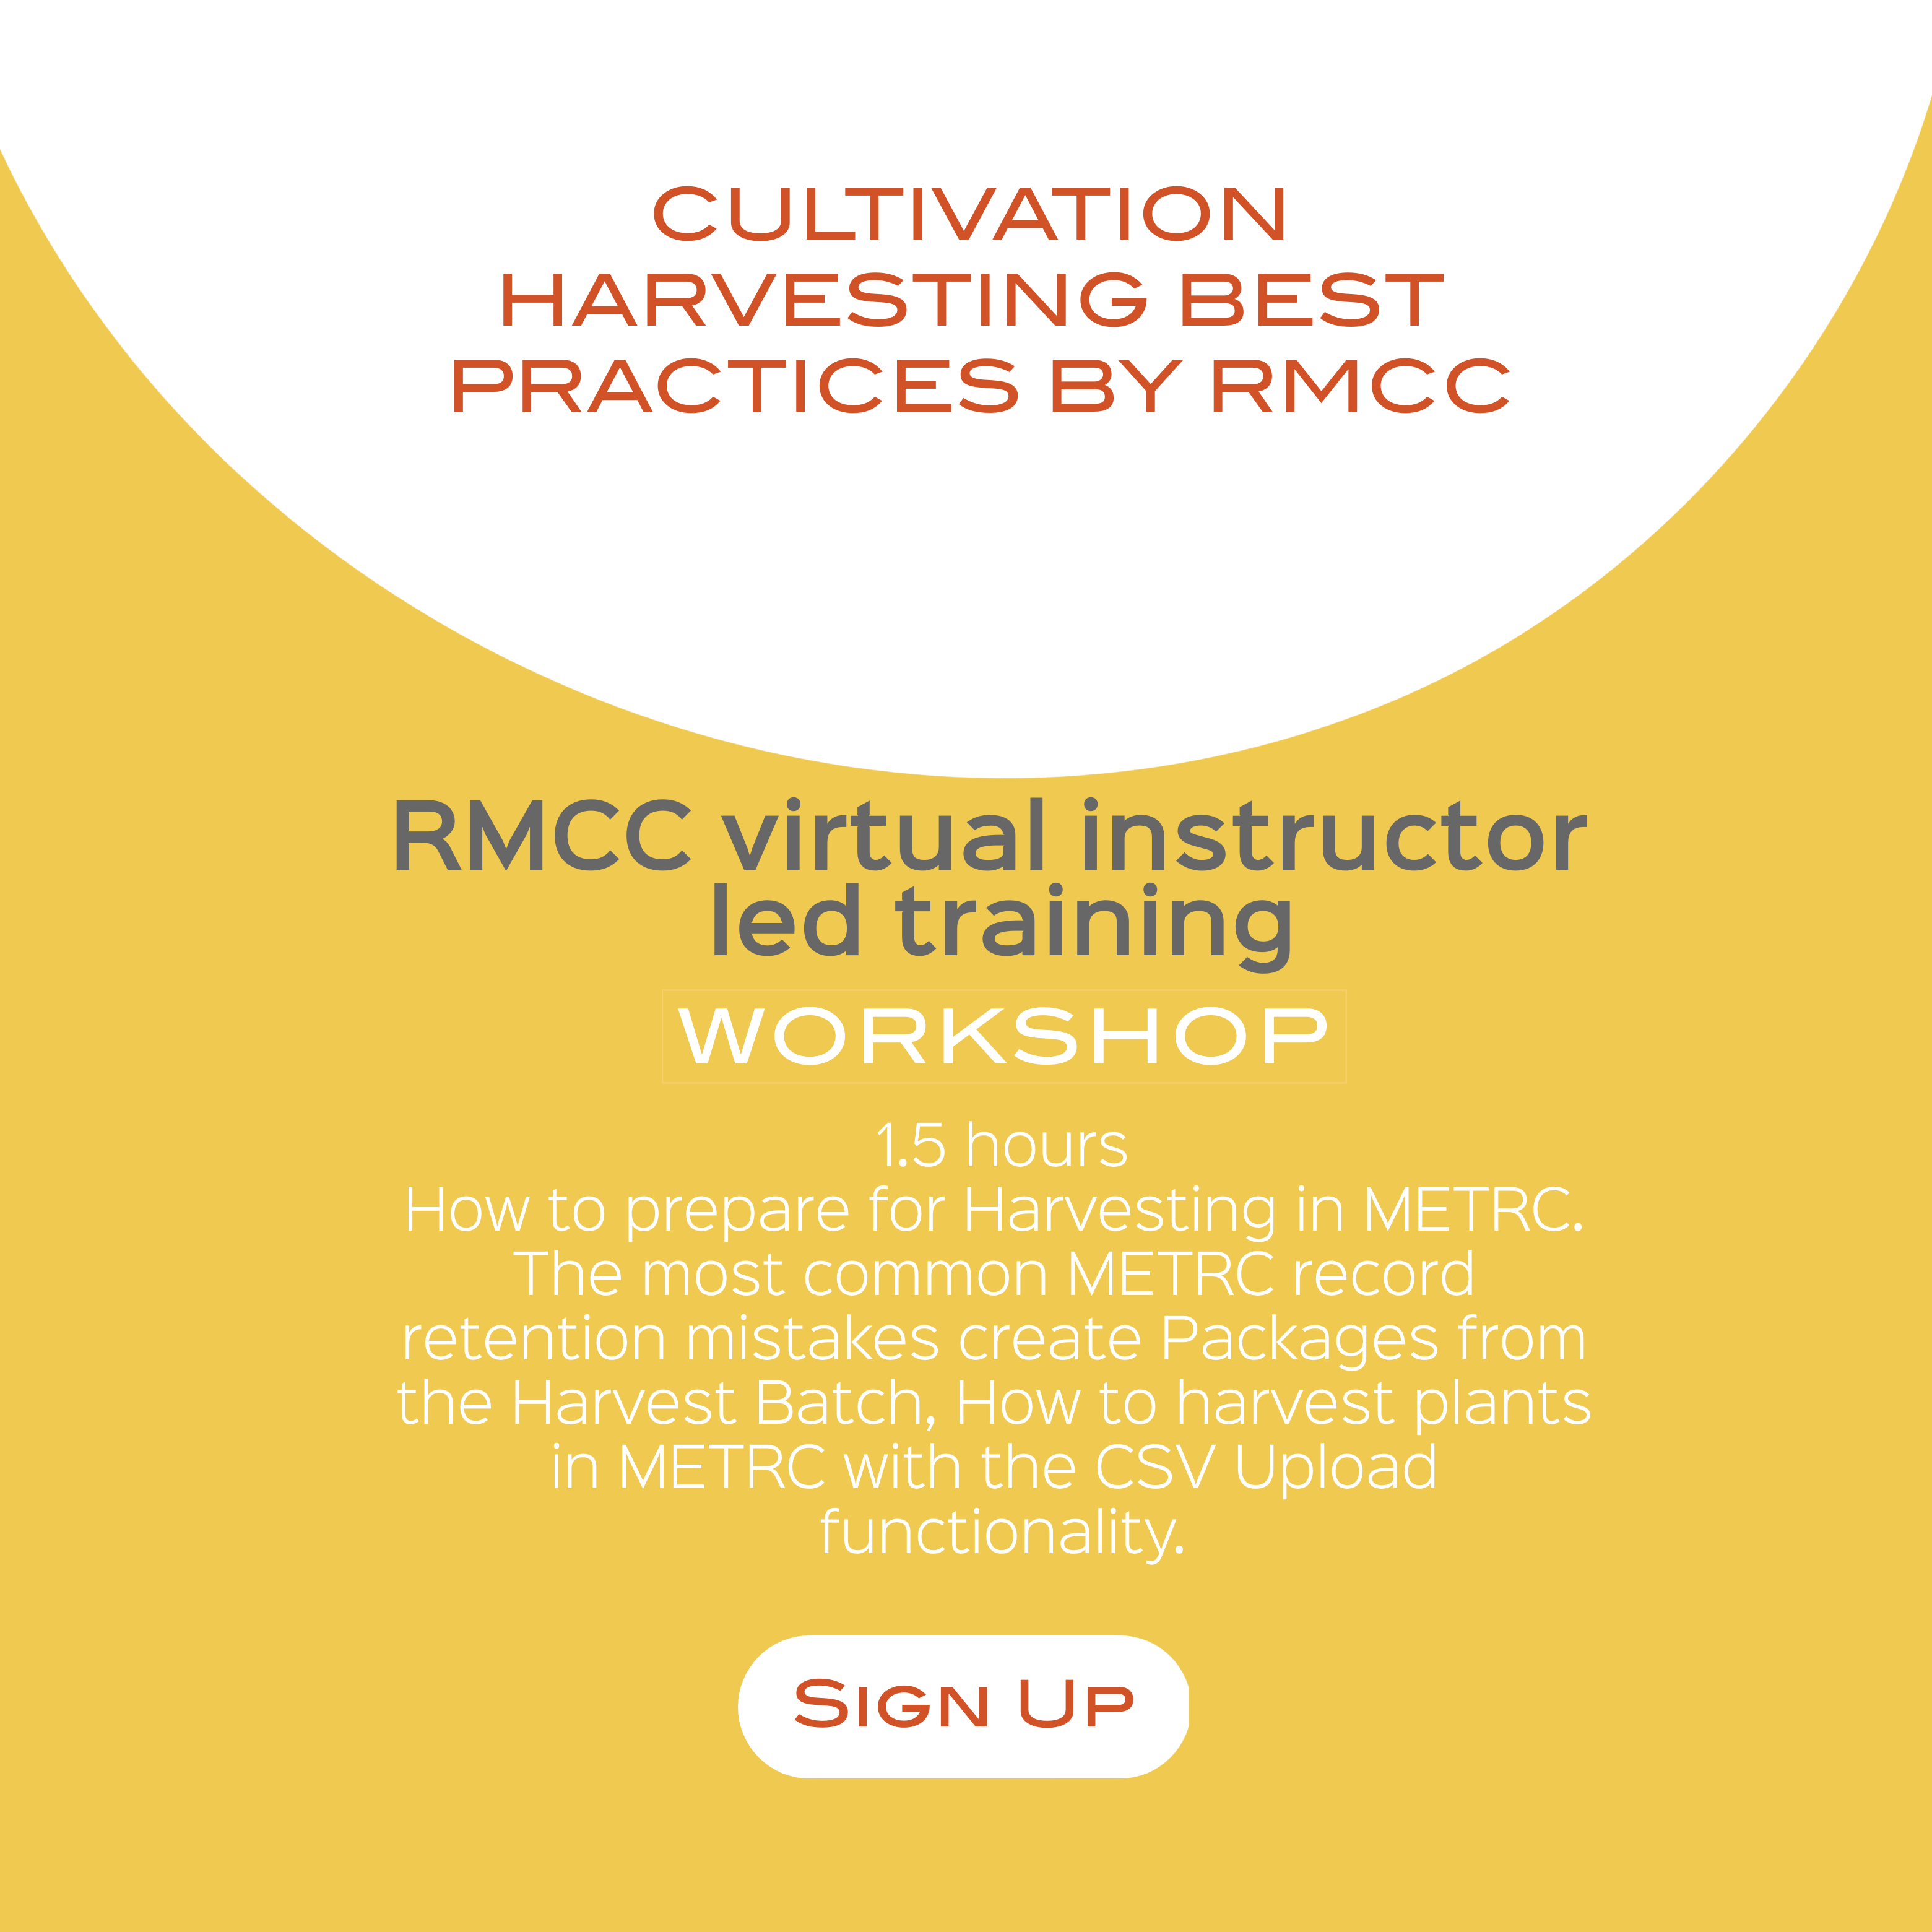 Cultivation Harvesting Best Practices by RMCC